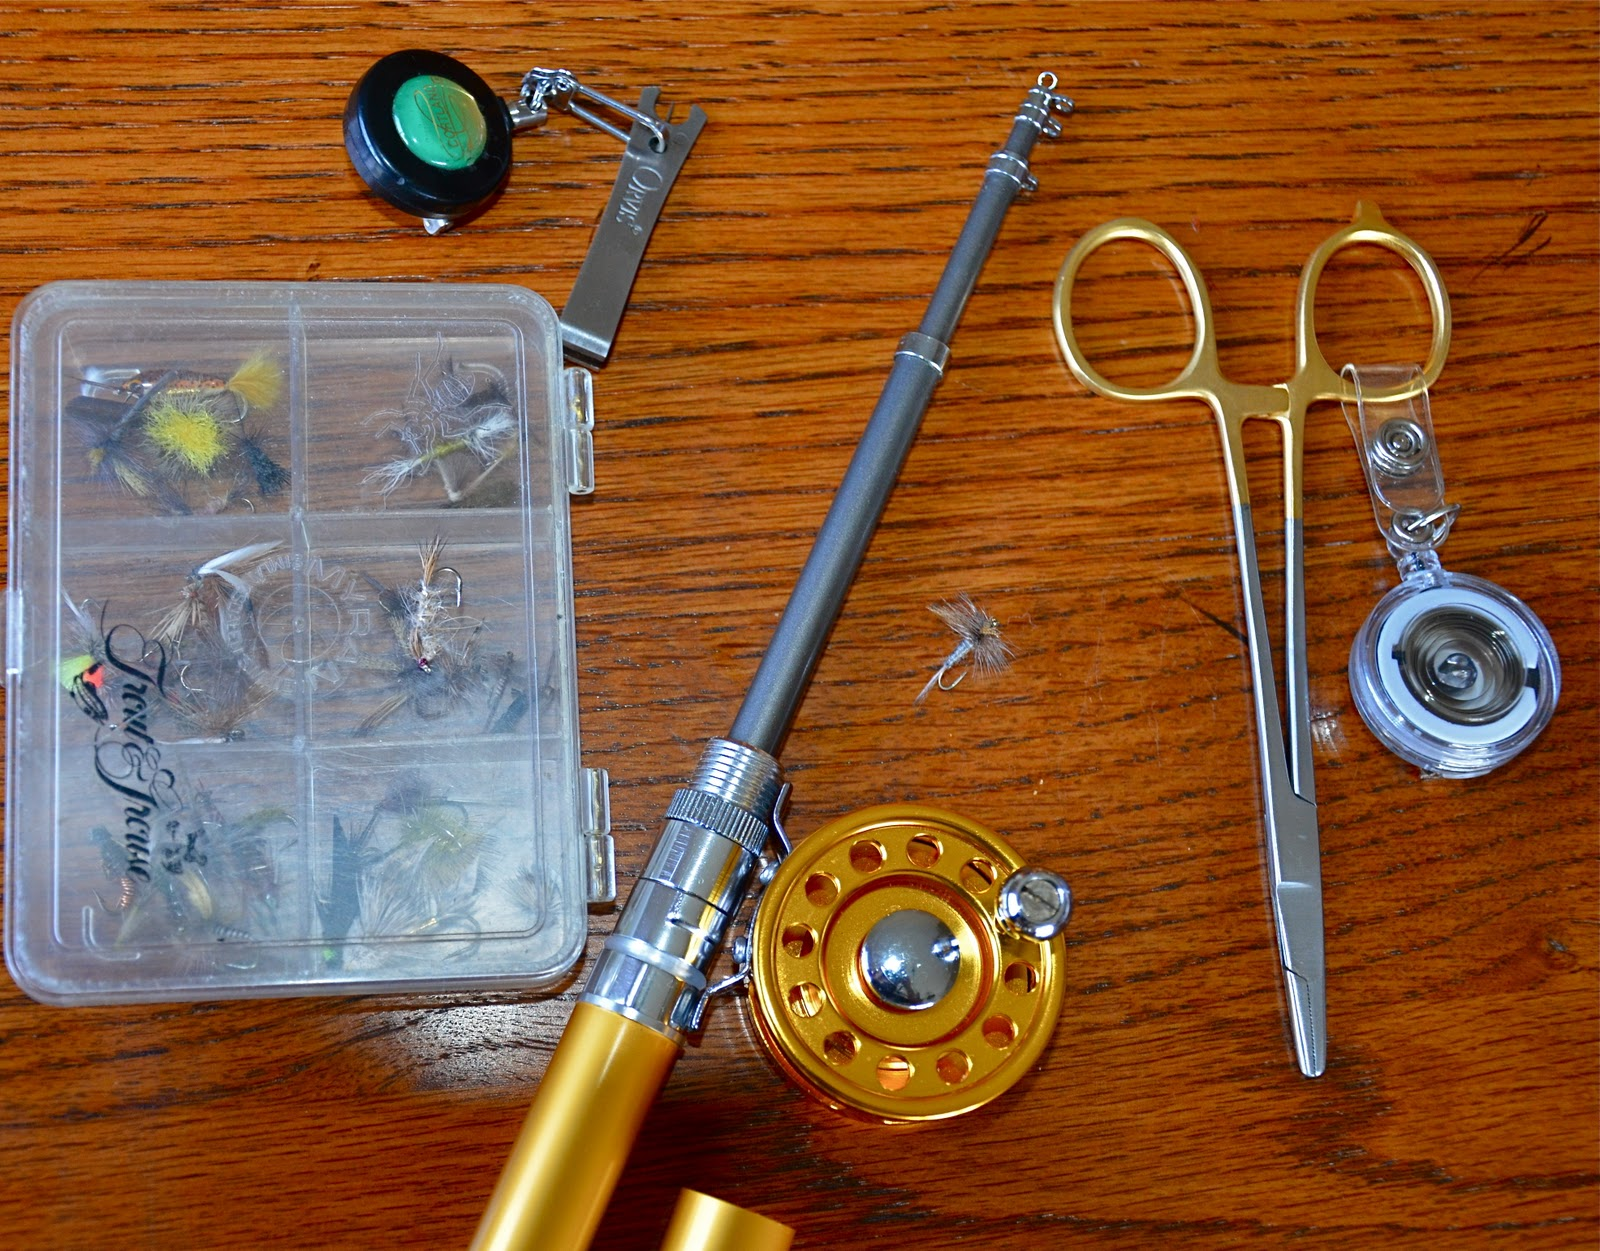 Silent sports chicago new ultralight fly fishing set up for Ultralight fly fishing